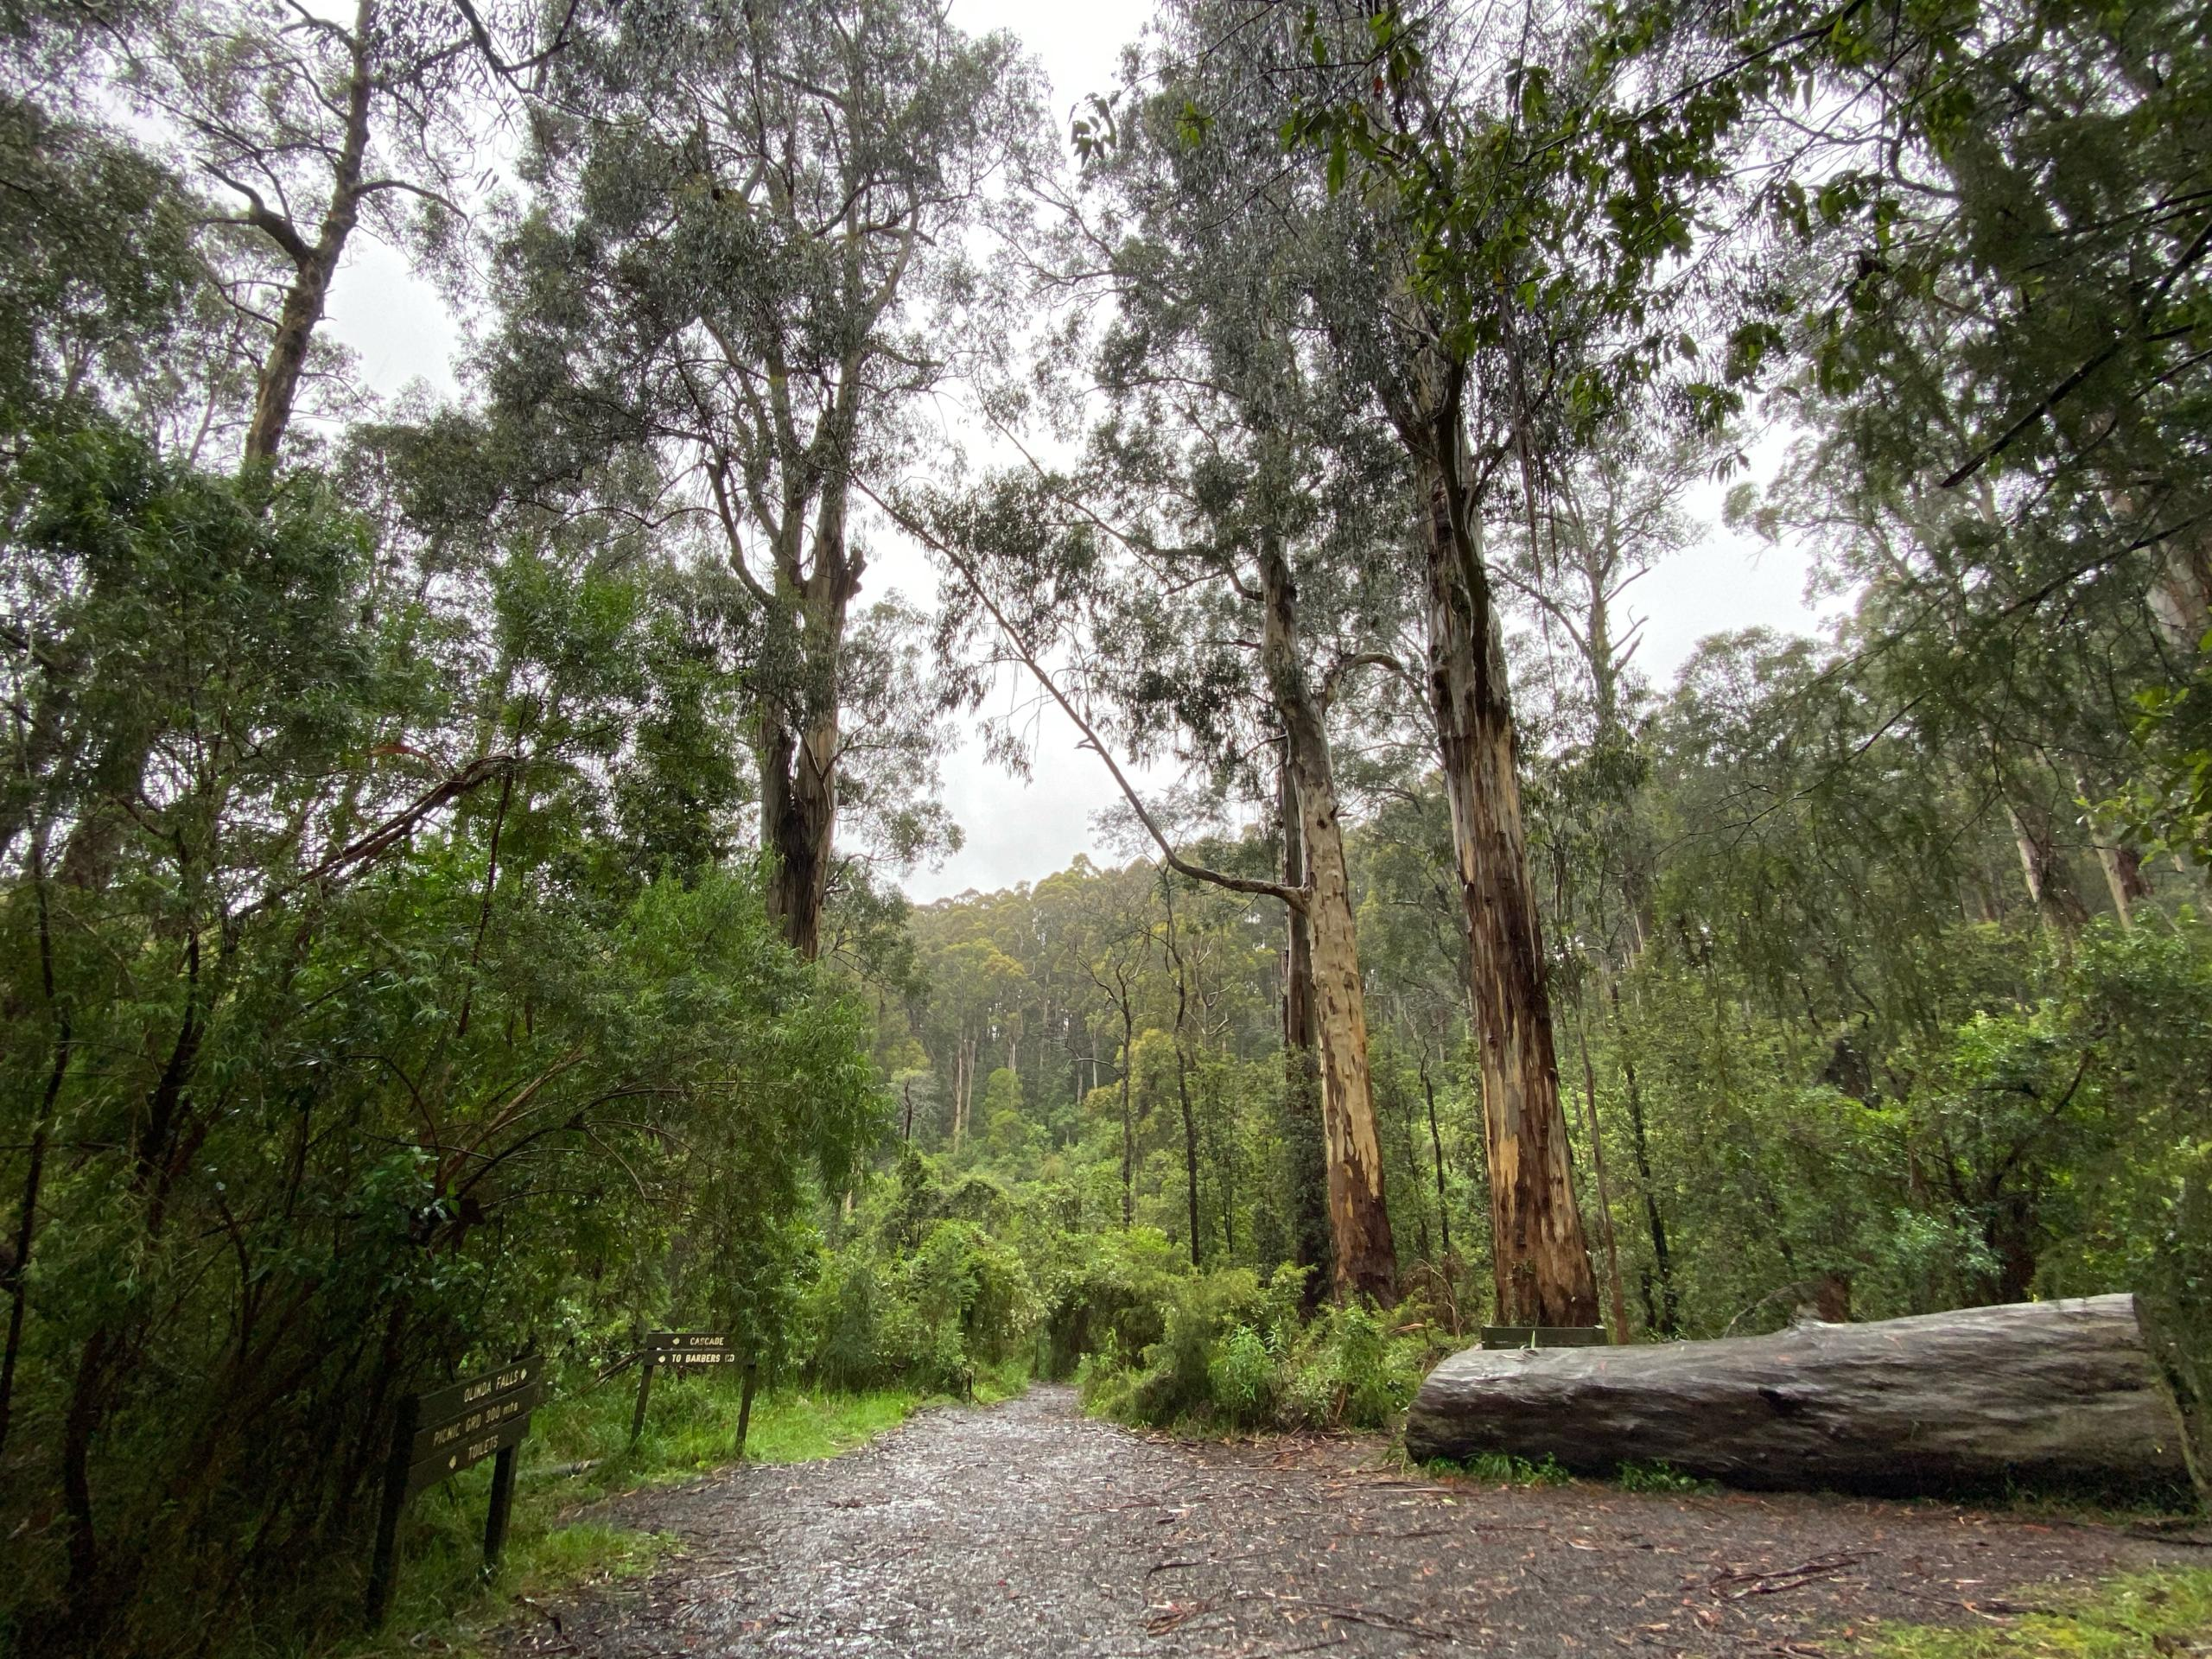 Mountain ash (Eucalyptus regnans) are the tallest flowering plants in the world,with known past specimens reaching 100 metres in heightand 34 metres around the trunk. Their alpine ash cousins (Eucalyptus delegatensis) aren't far behind.Mountain ash trees occupy small niches in the mountains of Victoria and New South Wales. Photo: Amalyah Hart